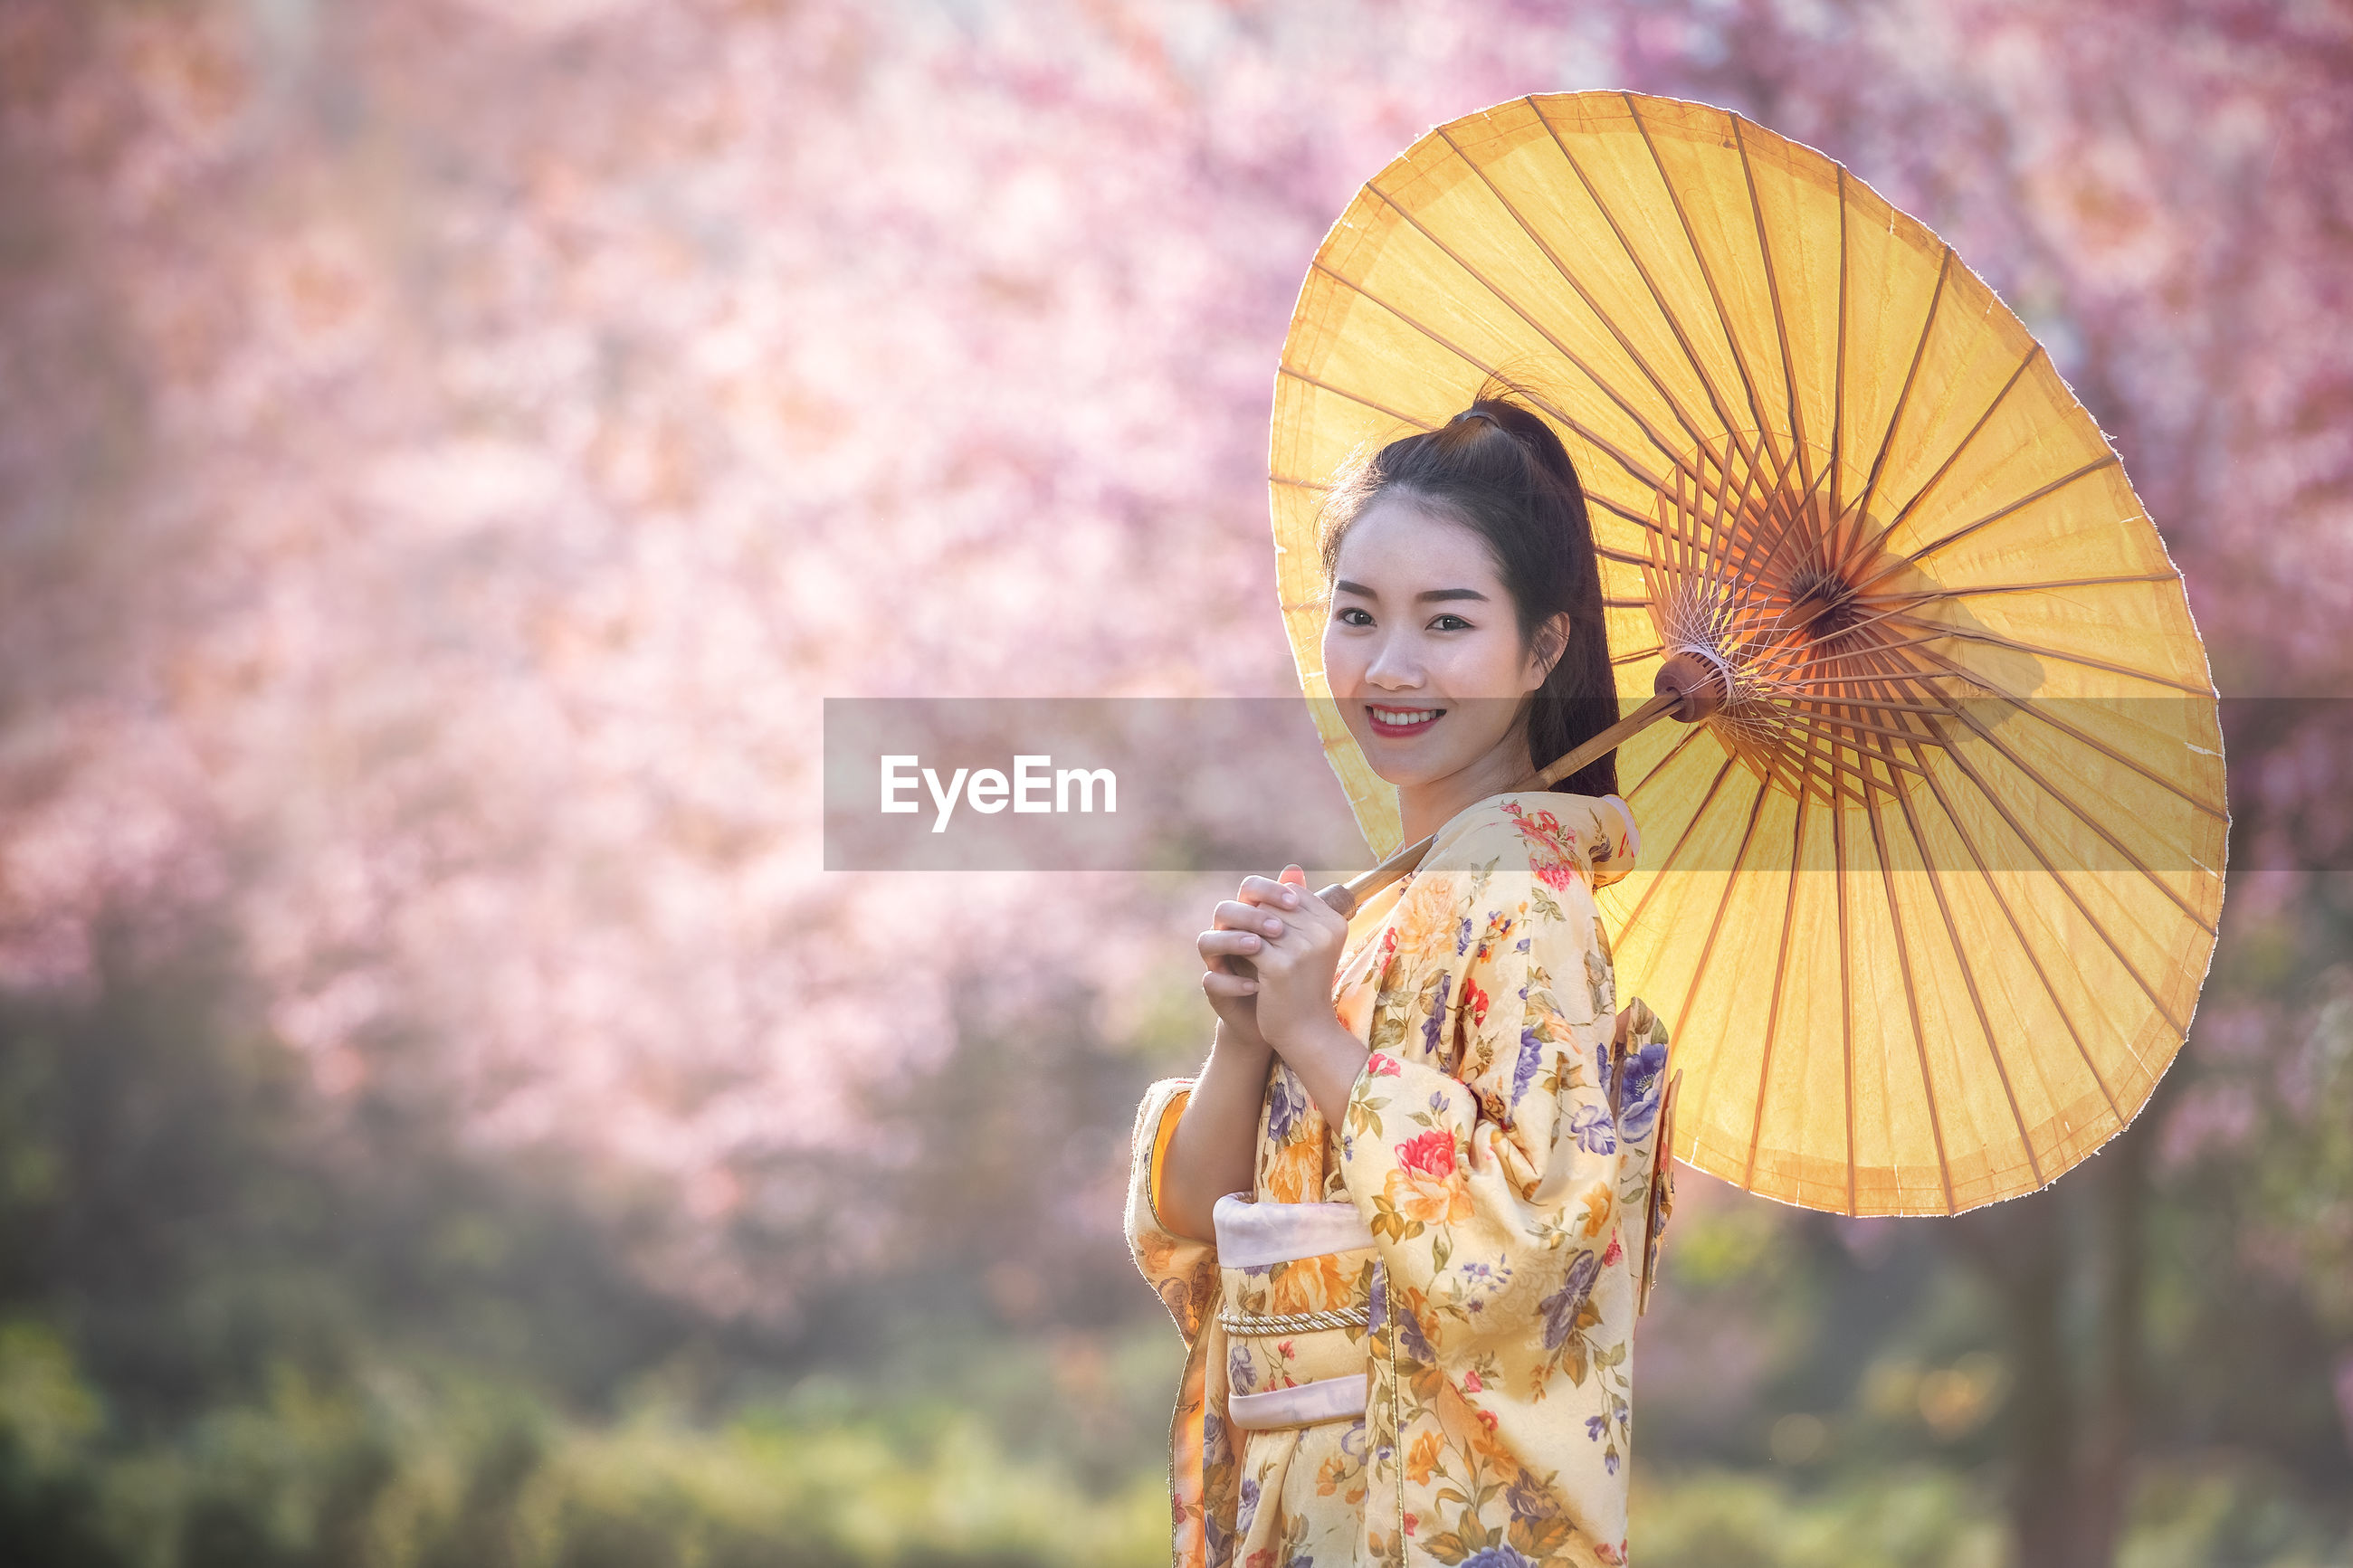 Portrait of smiling young woman with umbrella standing against cherry blossom